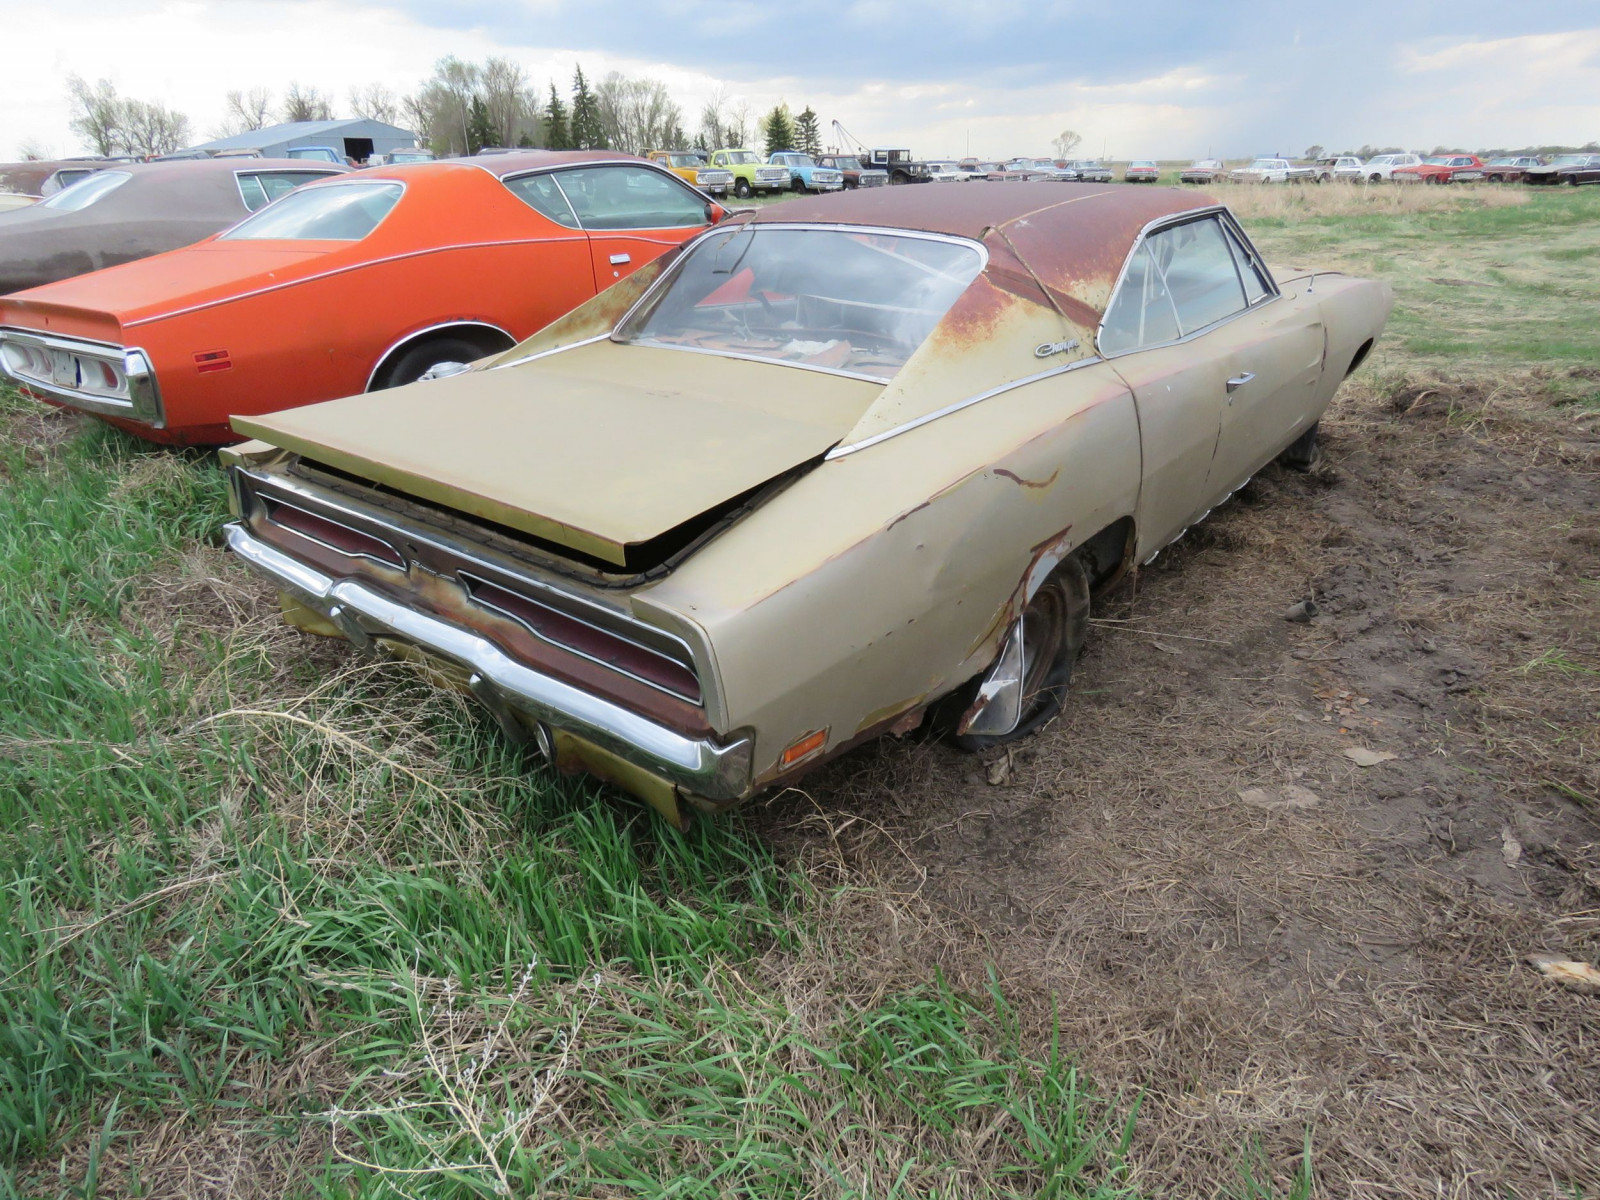 1969 Dodge Charger - Image 5